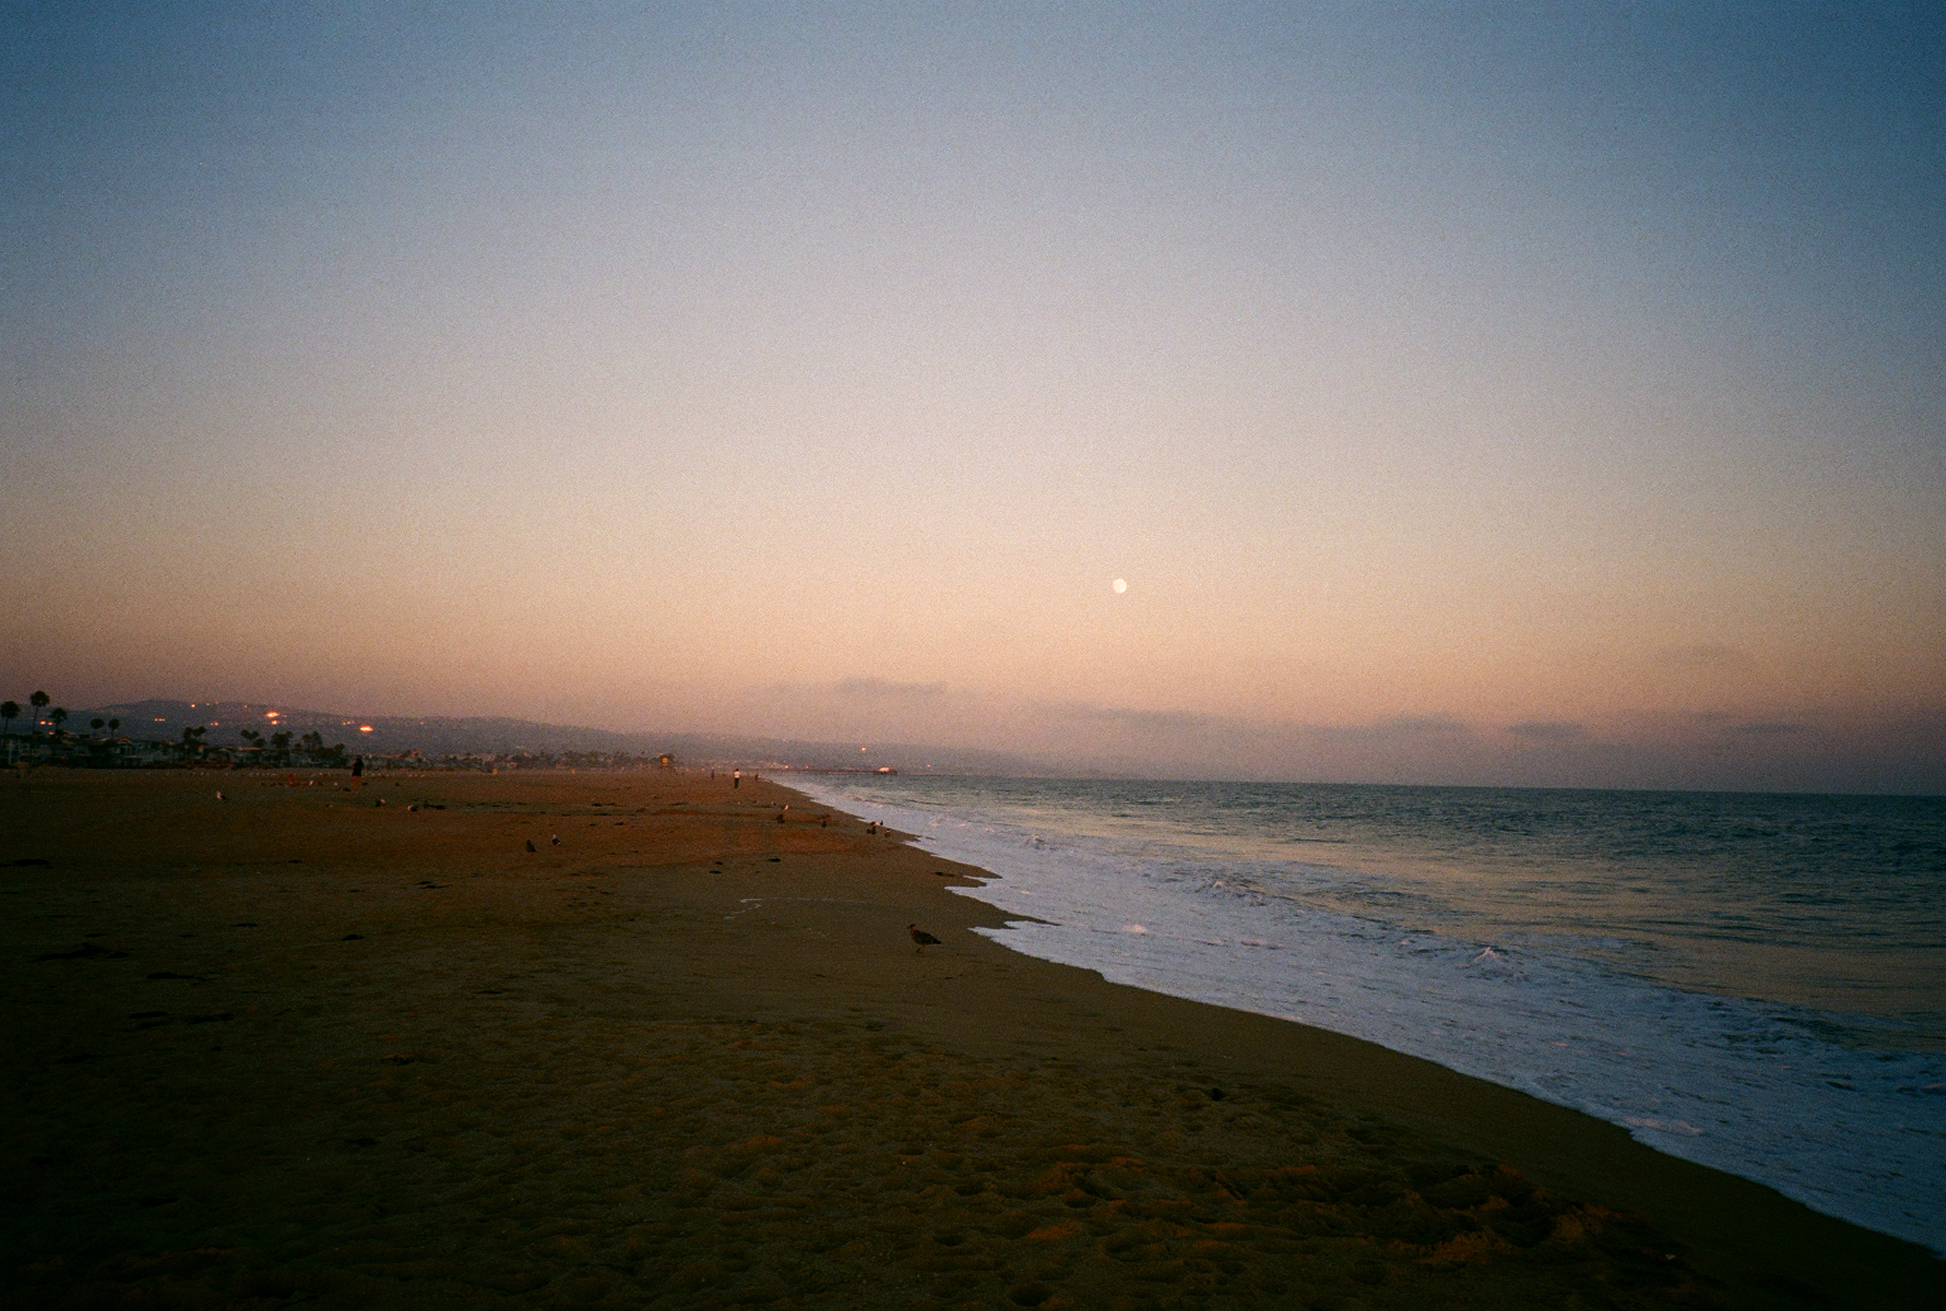 I really love this recent roll from the Olympus XA4 and Fuji C200. I think I might be having some underexposure issues, but I also don't remember if I set the ISO properly for this roll. The consistency of beautiful sunset gradients in SoCal is unreal.